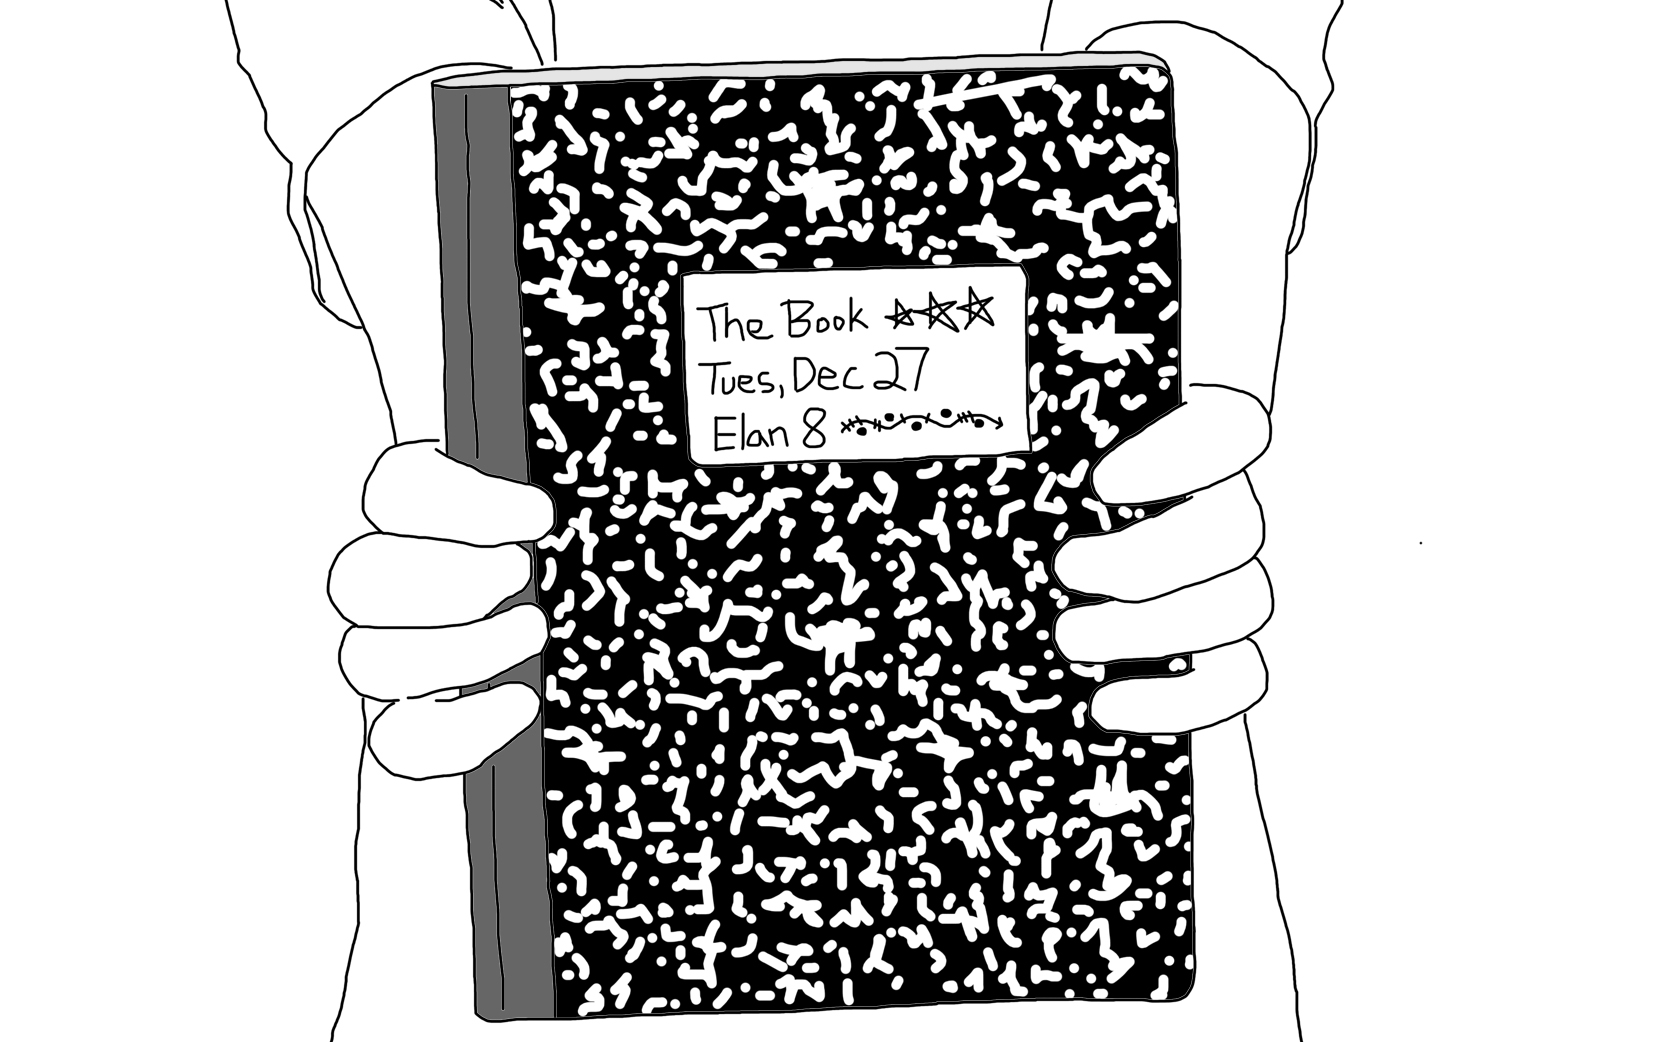 25: House of Notebooks